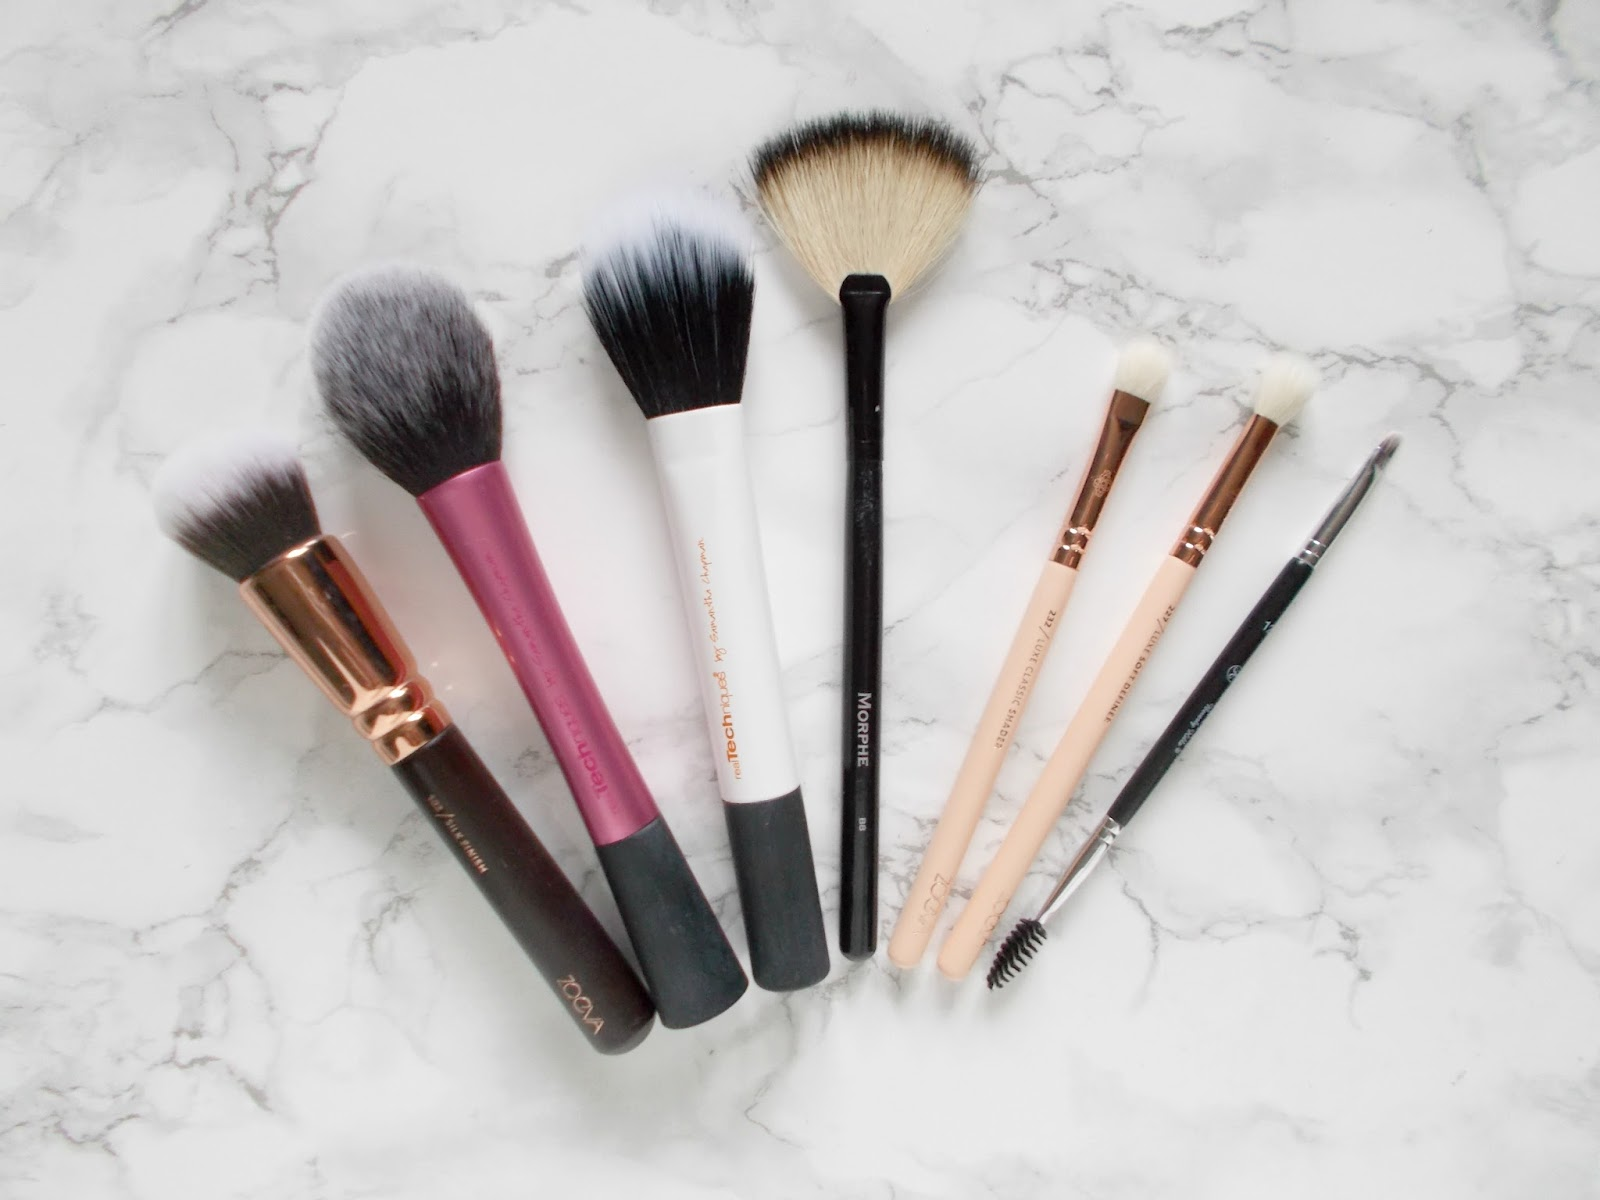 favourite makeup brushes zoeva real techniques morphe anastasia beverly hills